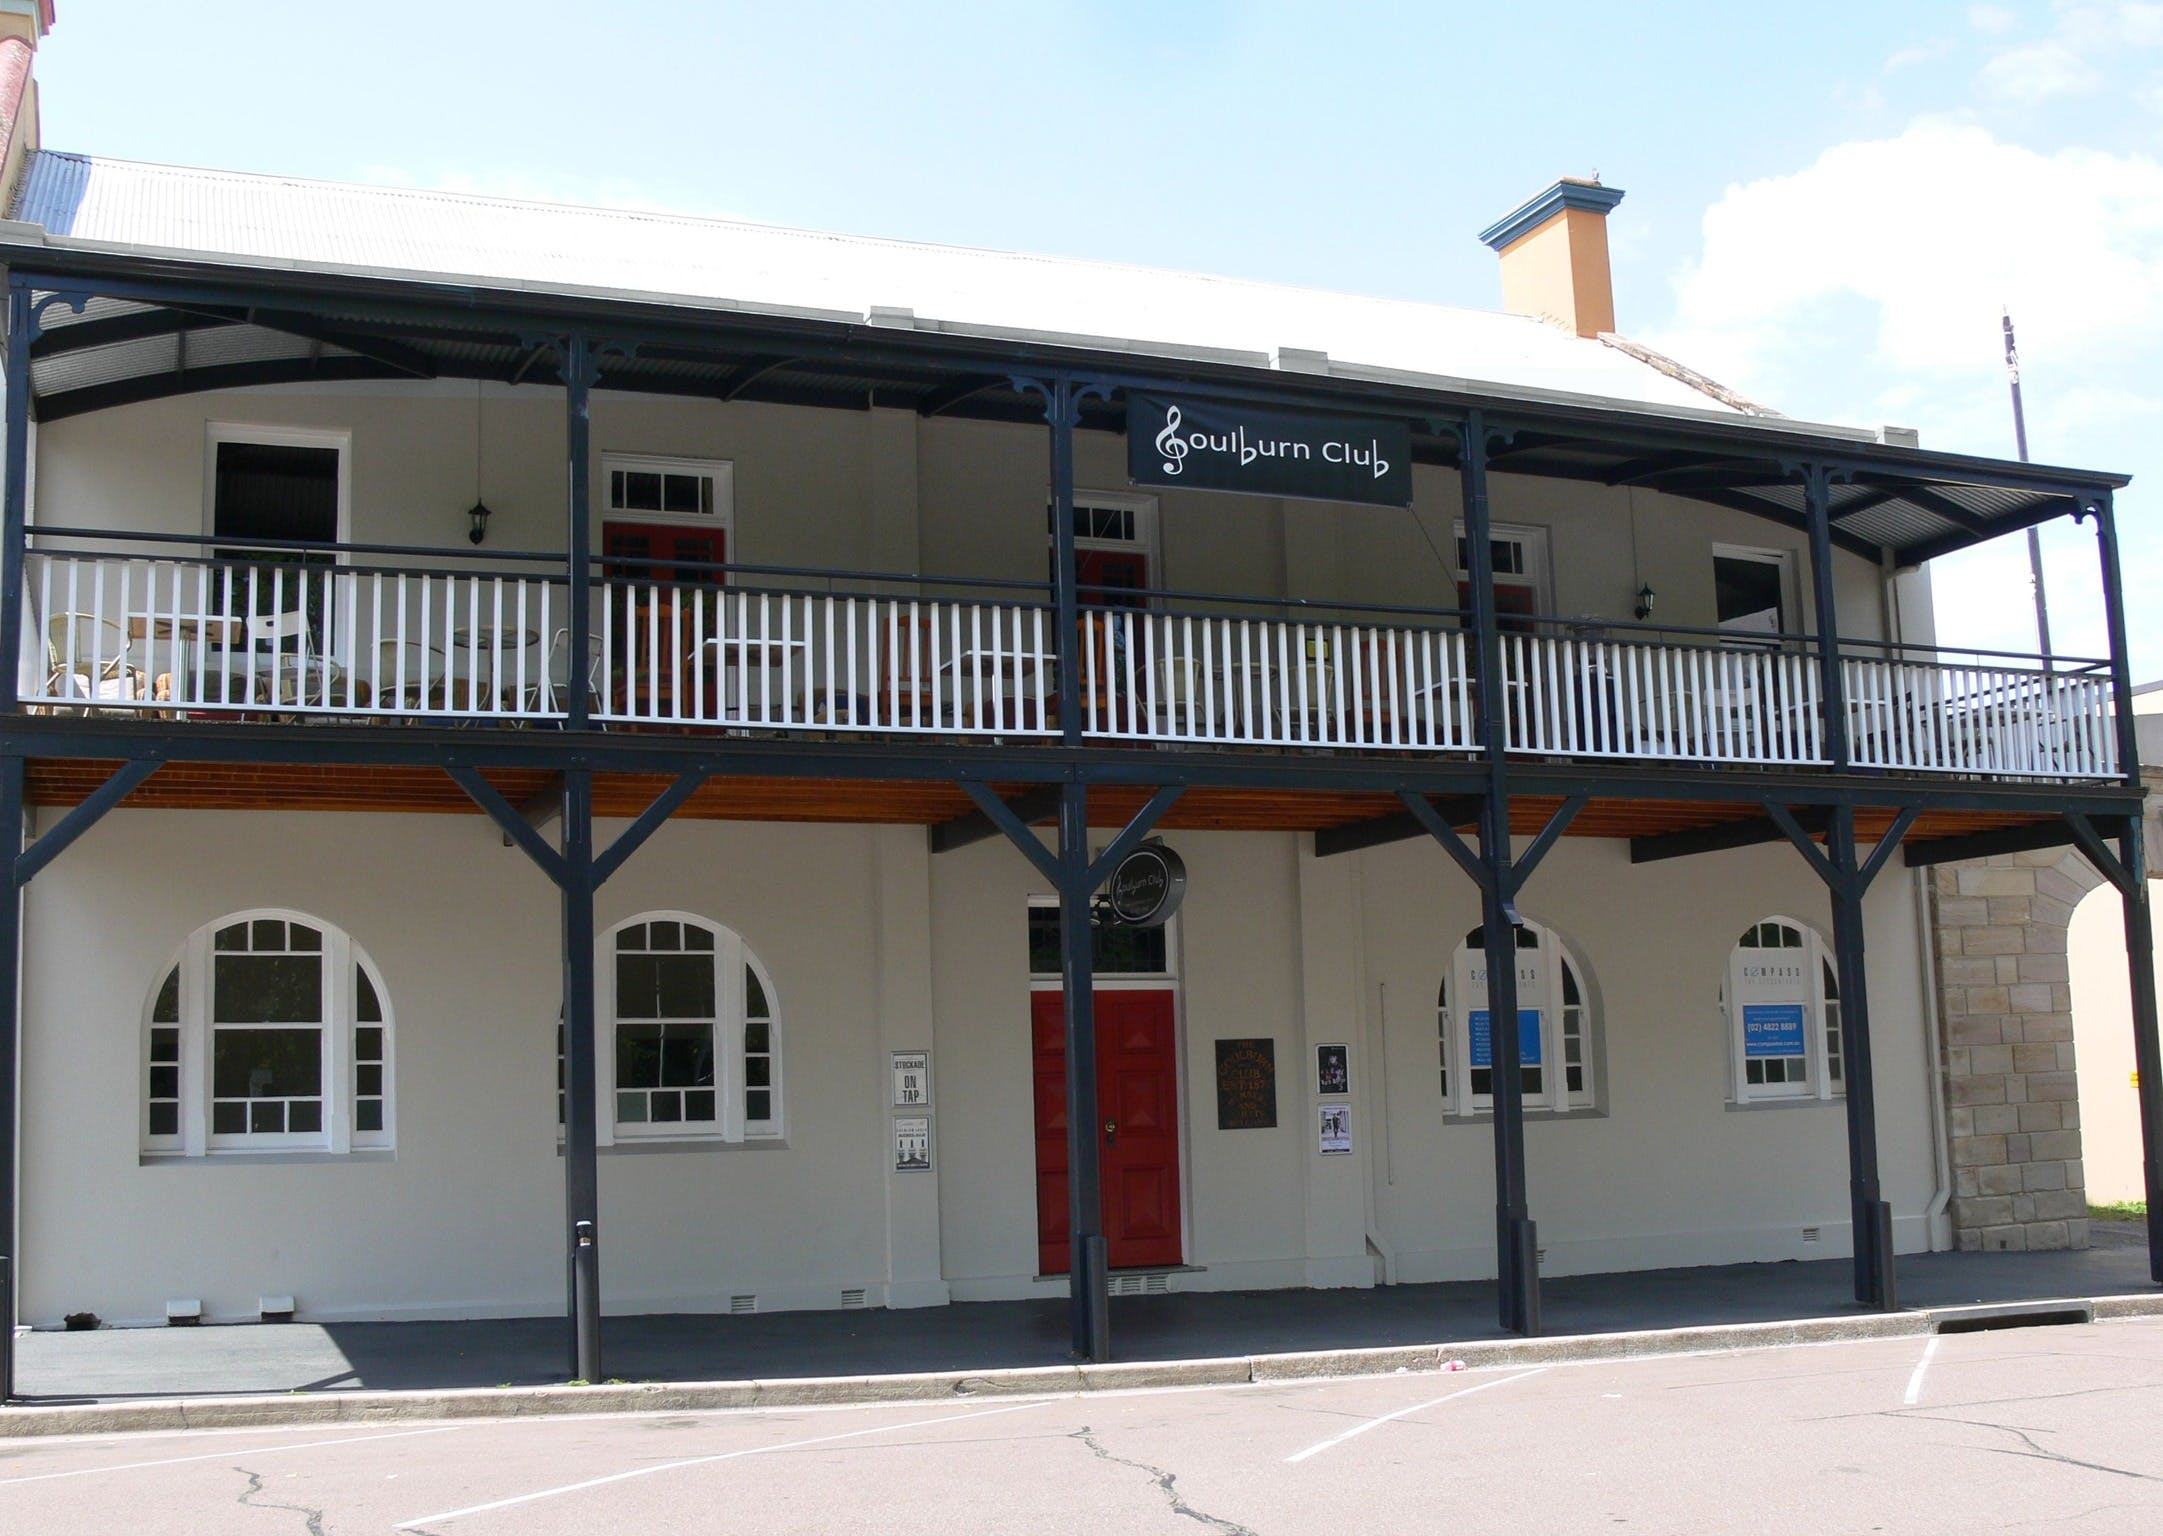 Open Mic Night at the Goulburn Club - Accommodation Ballina